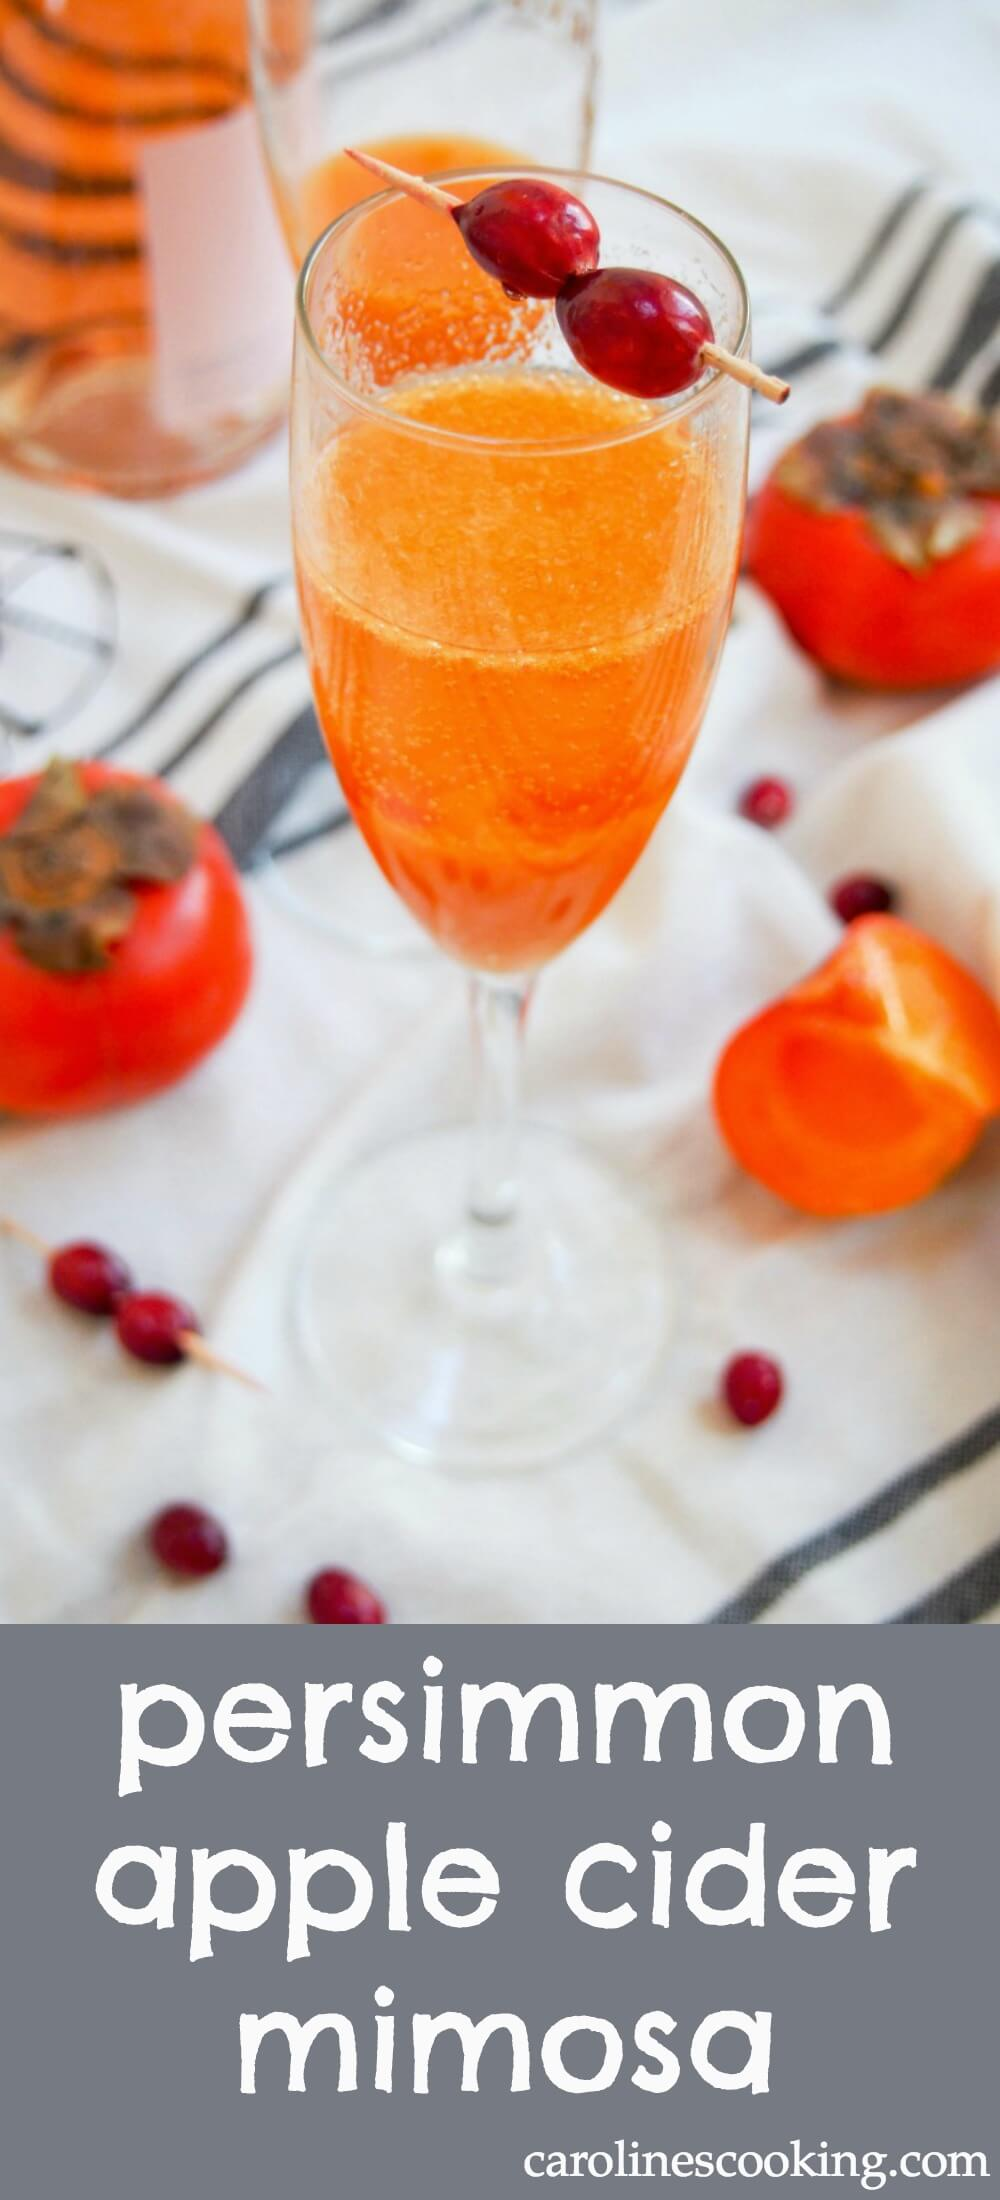 Only 3 ingredients, a couple minutes and you've got a beautiful, bubbling glass. This persimmon apple cider mimosa is a great seasonal cocktail. #cocktail #champagne